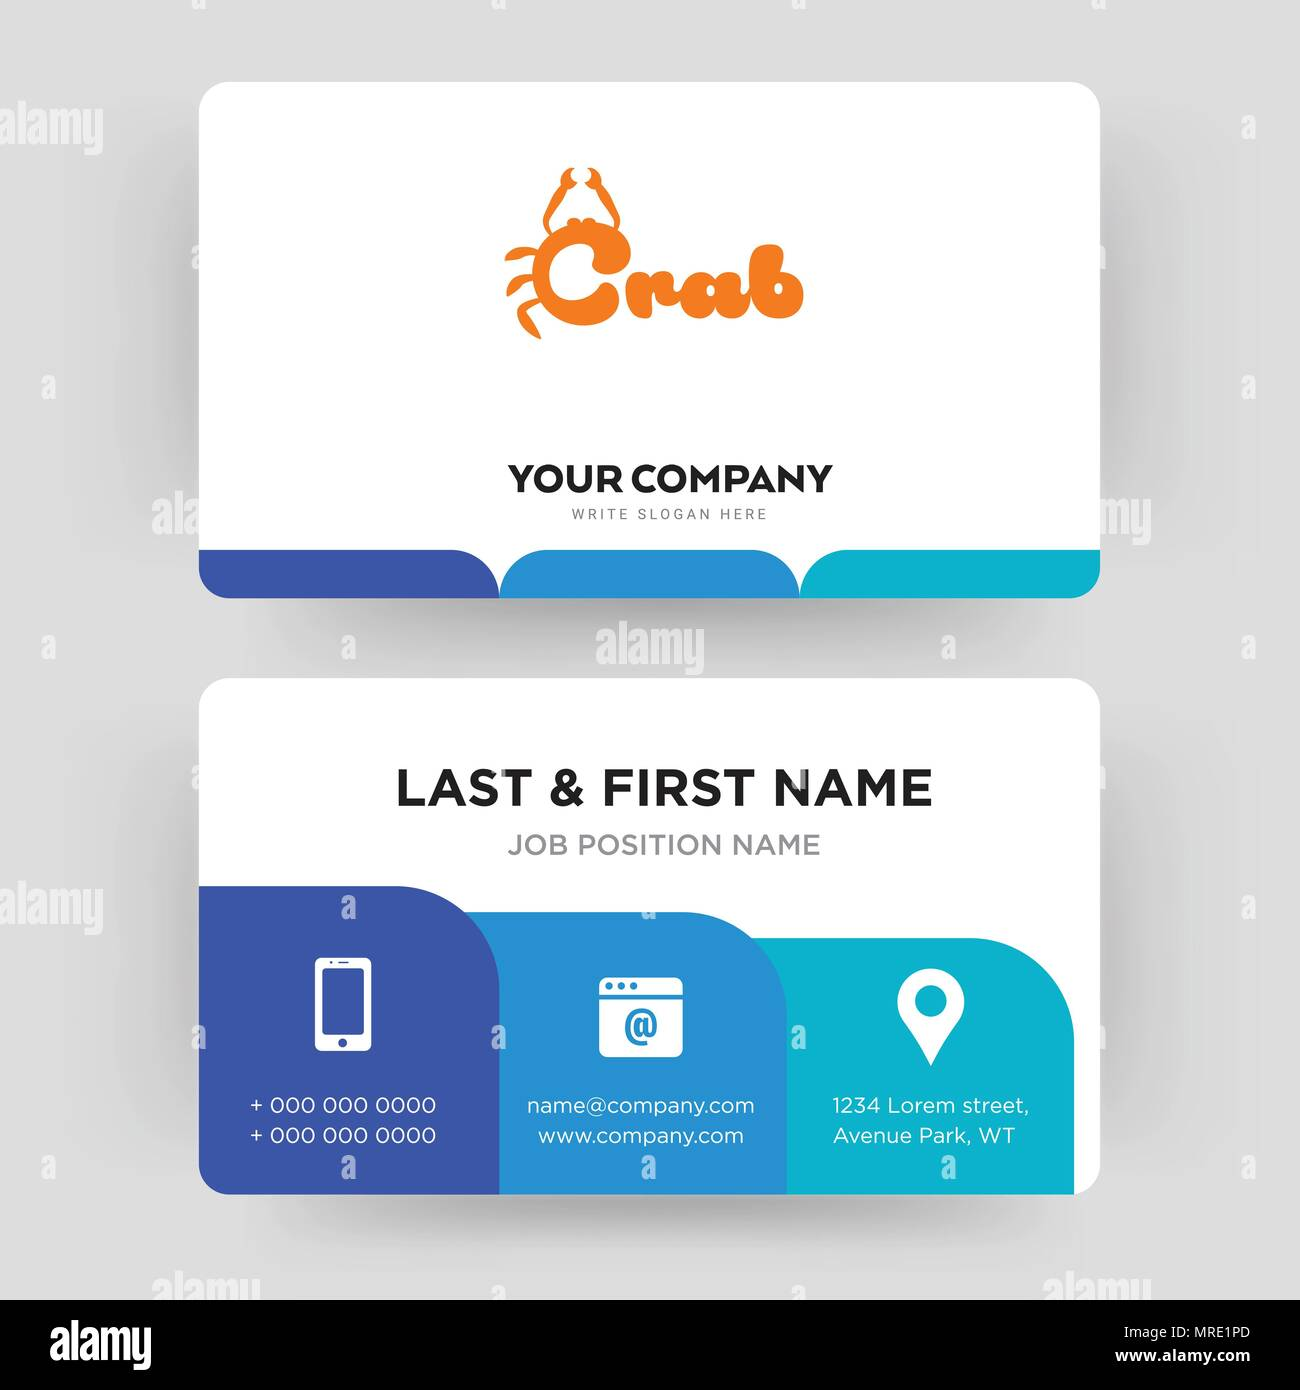 Crab business card design template visiting for your company crab business card design template visiting for your company modern creative and clean identity card vector wajeb Image collections